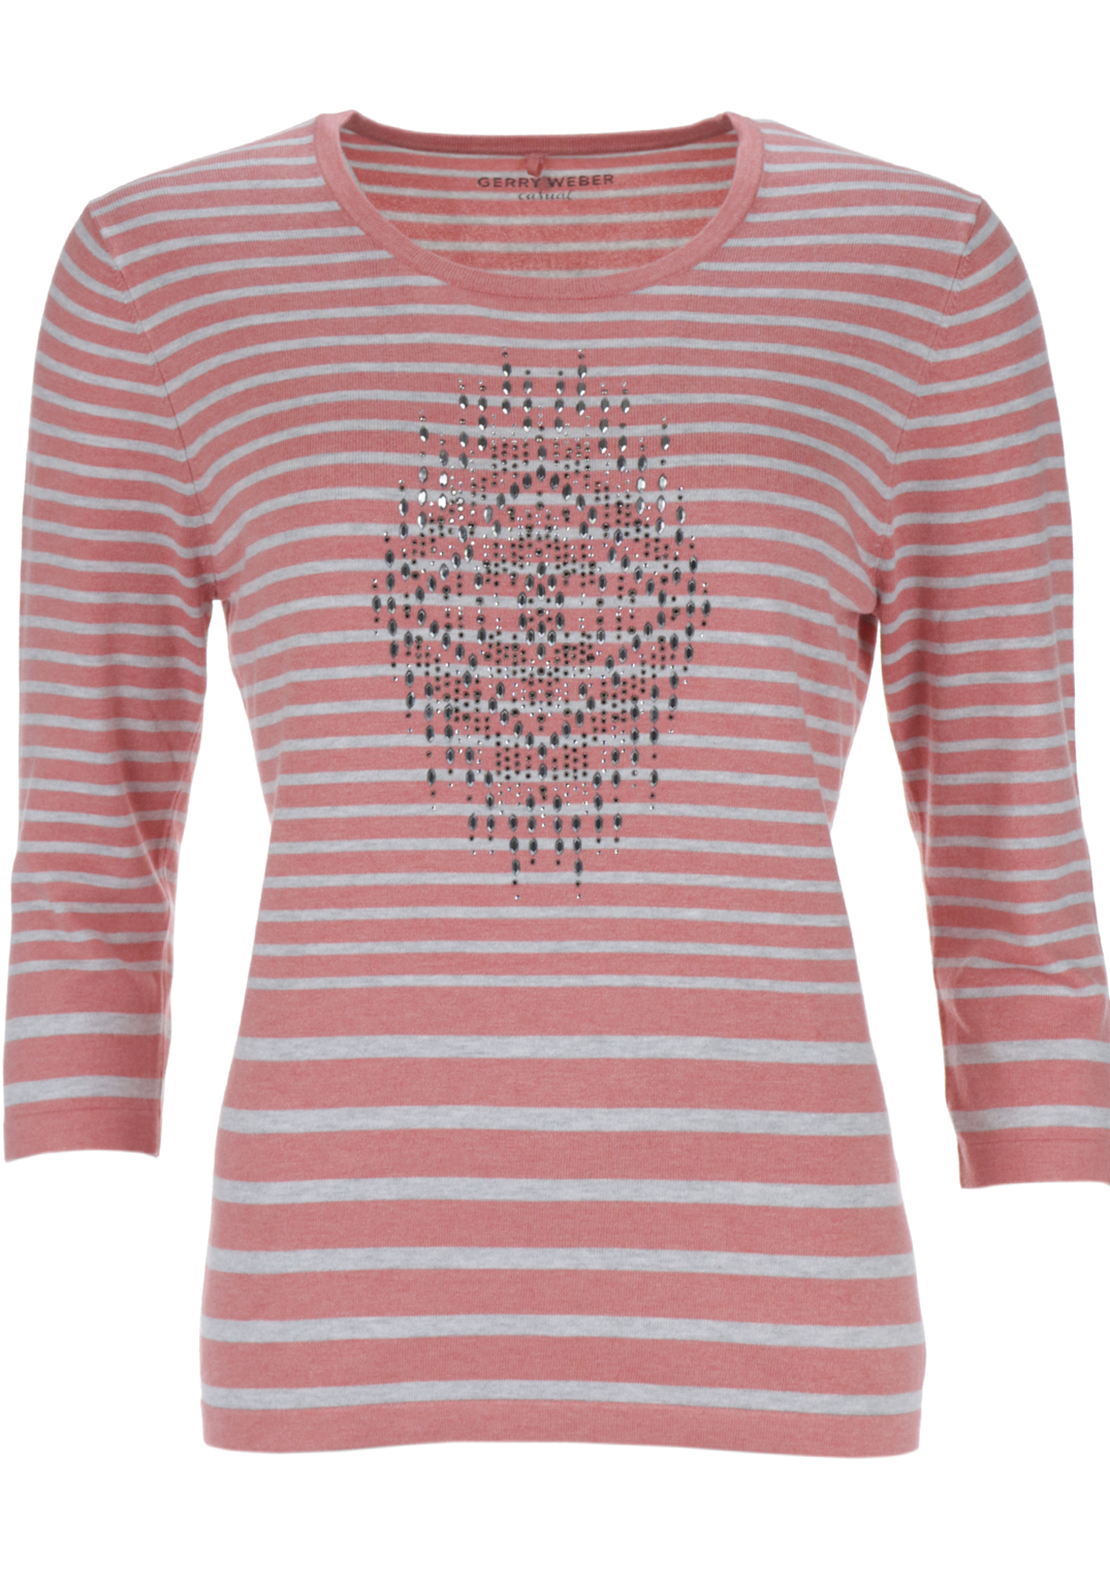 gerry weber relaxed fitted striped knitwear jumper with. Black Bedroom Furniture Sets. Home Design Ideas